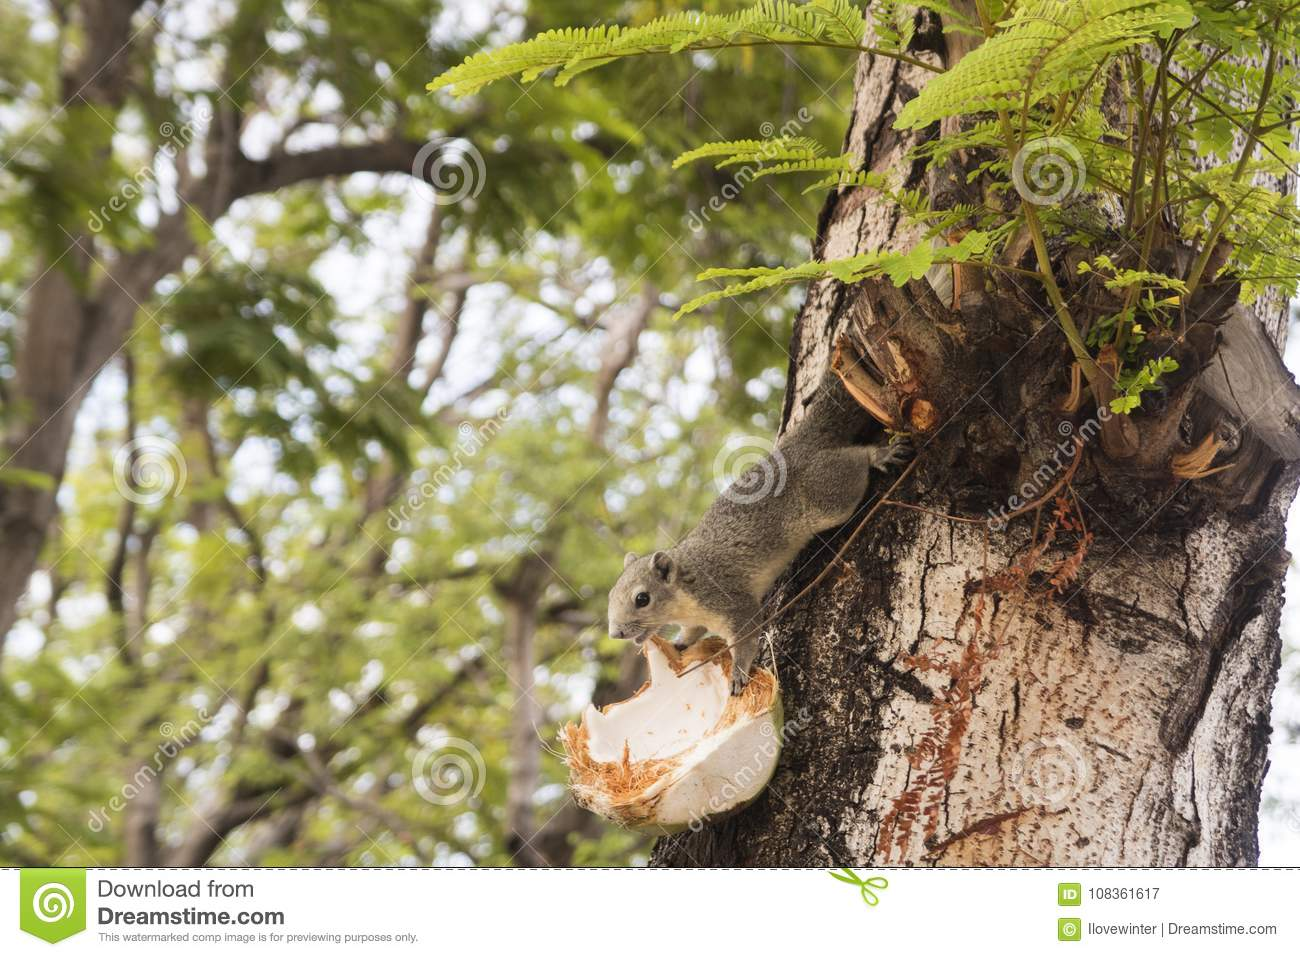 Squirrel eating coconut on tree.